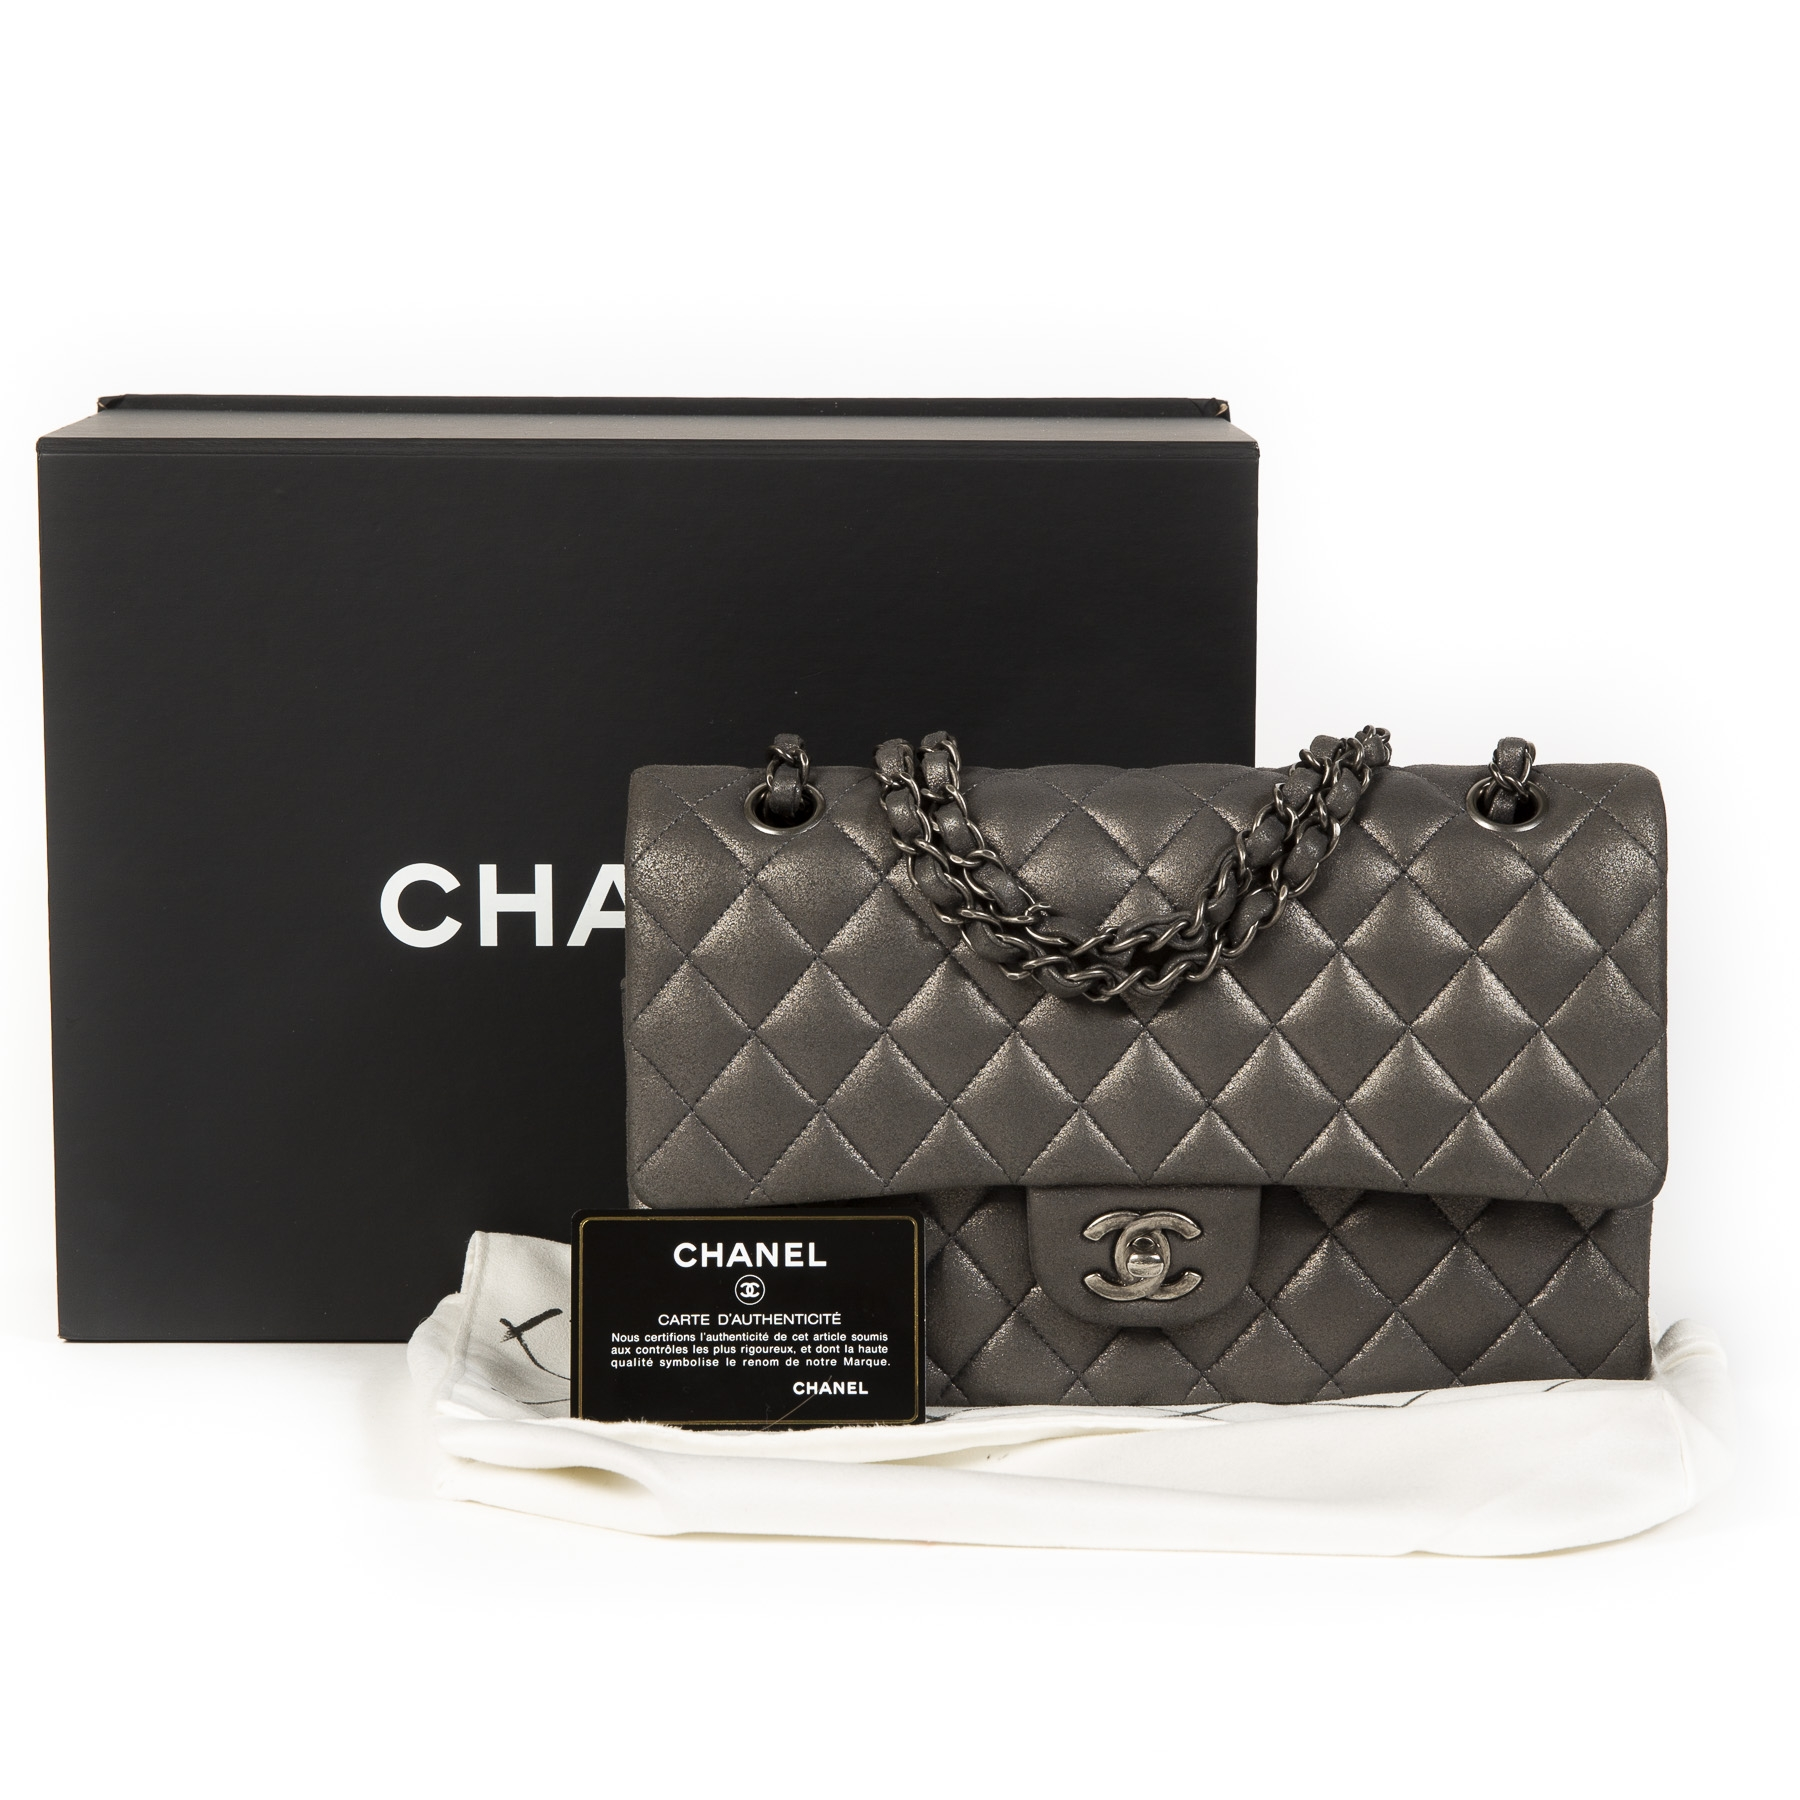 2de984fc12b7 ... buy online webshop LabelLOV Authentique seconde main vintage Chanel  Medium Classic Flapbag Metallic Silver achète en ligne webshop LabelLOV